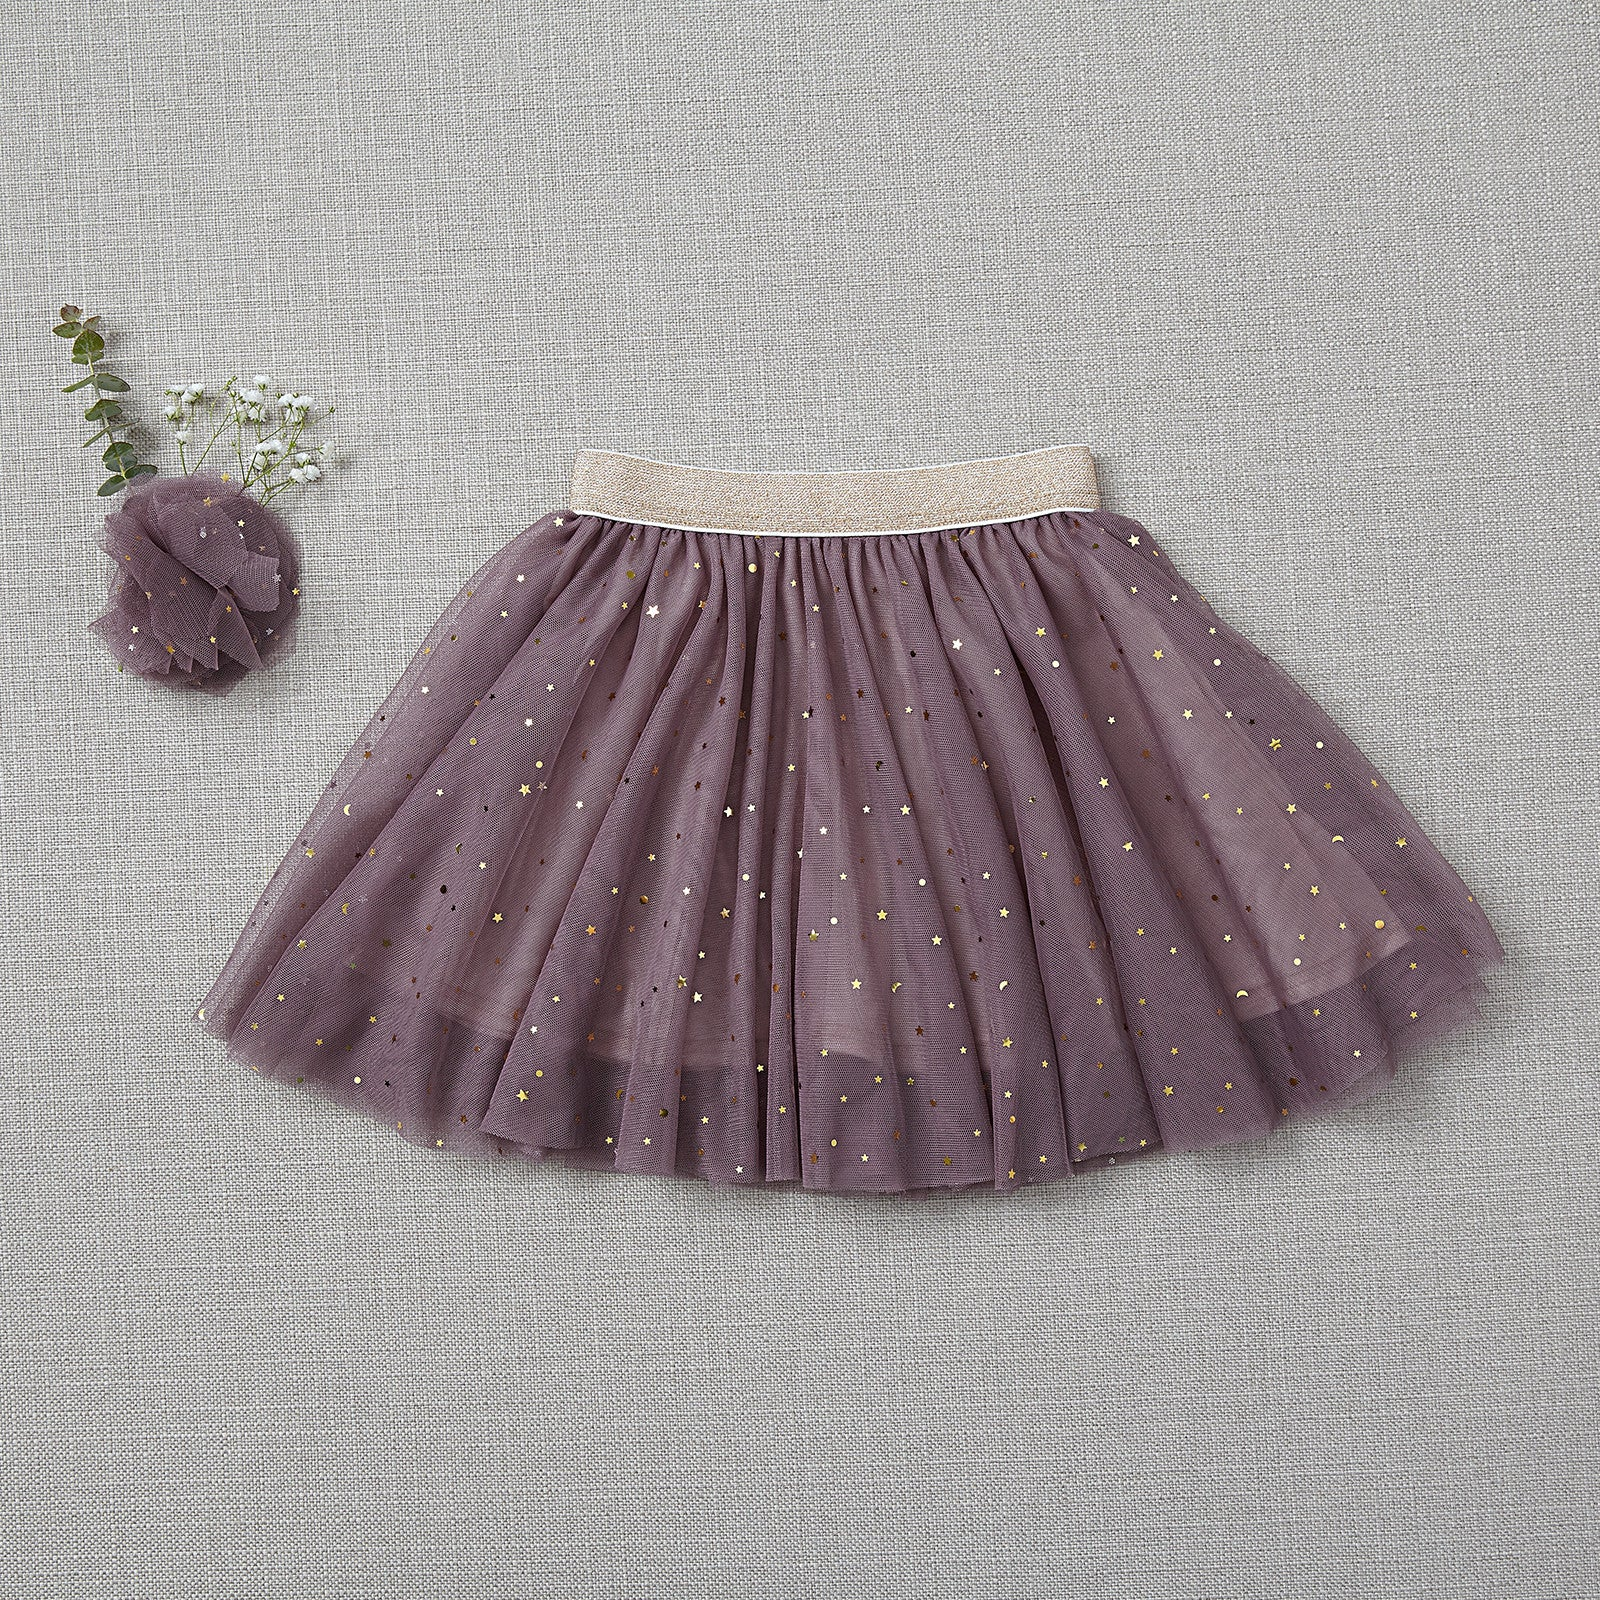 Twirly Tulle Skirt - Amethyst (FINAL SALE - Size 6/9m Only)